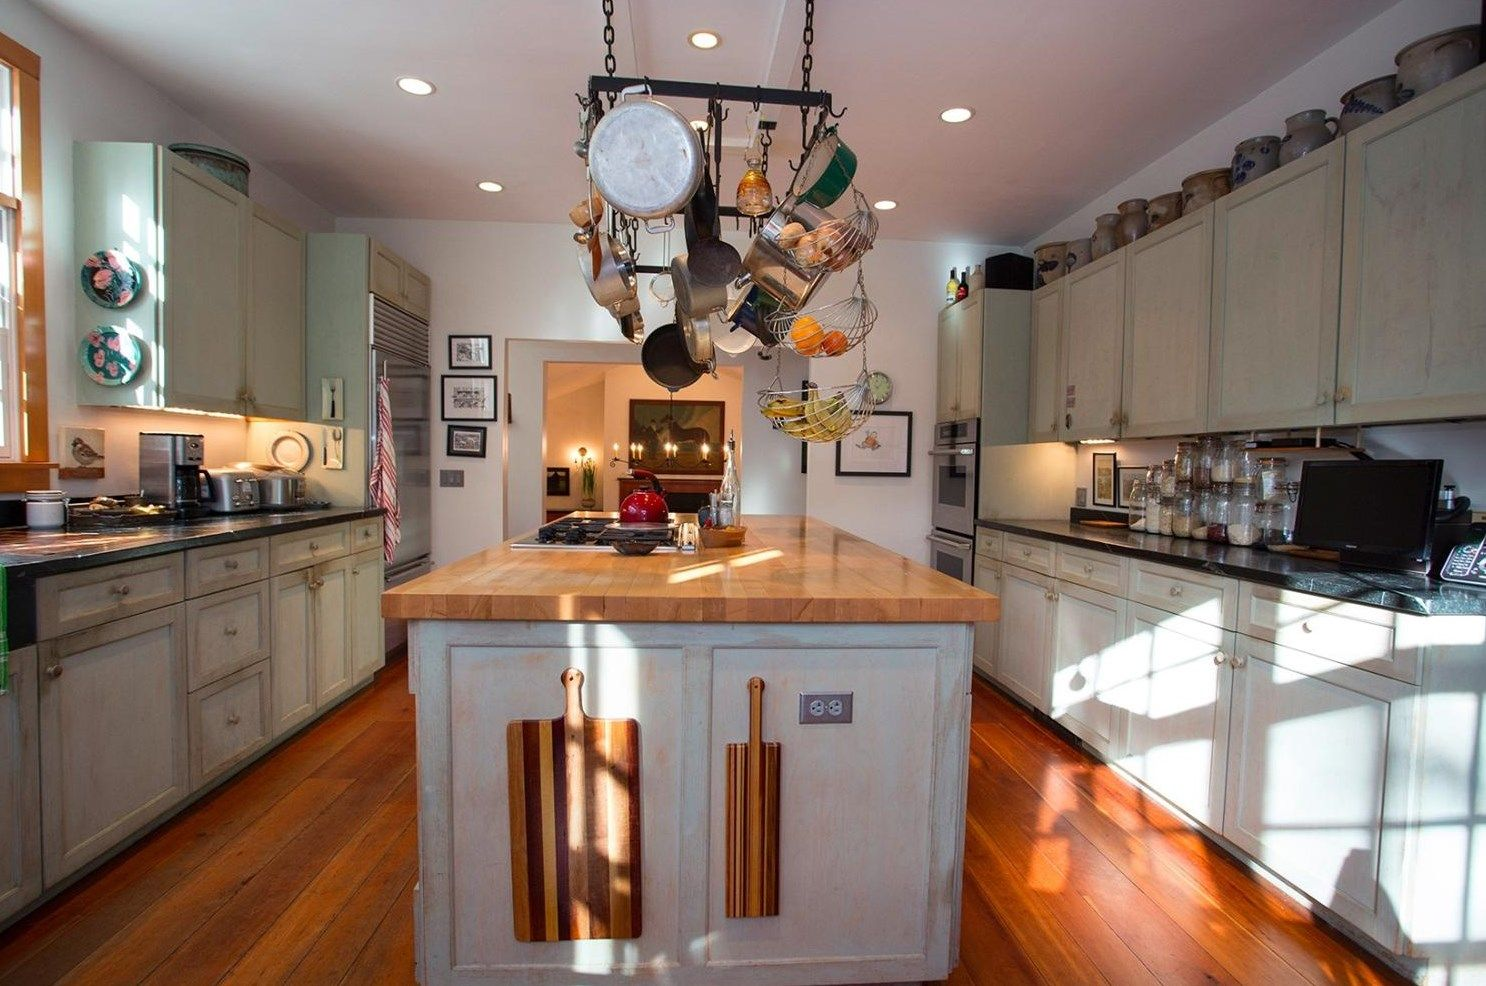 View property details for 1 Nelson Drive, Truro, MA. 1 Nelson Drive is a Single Family property with 5 bedrooms and 4 total baths for sale at $1,295,000. MLS# 21511431.